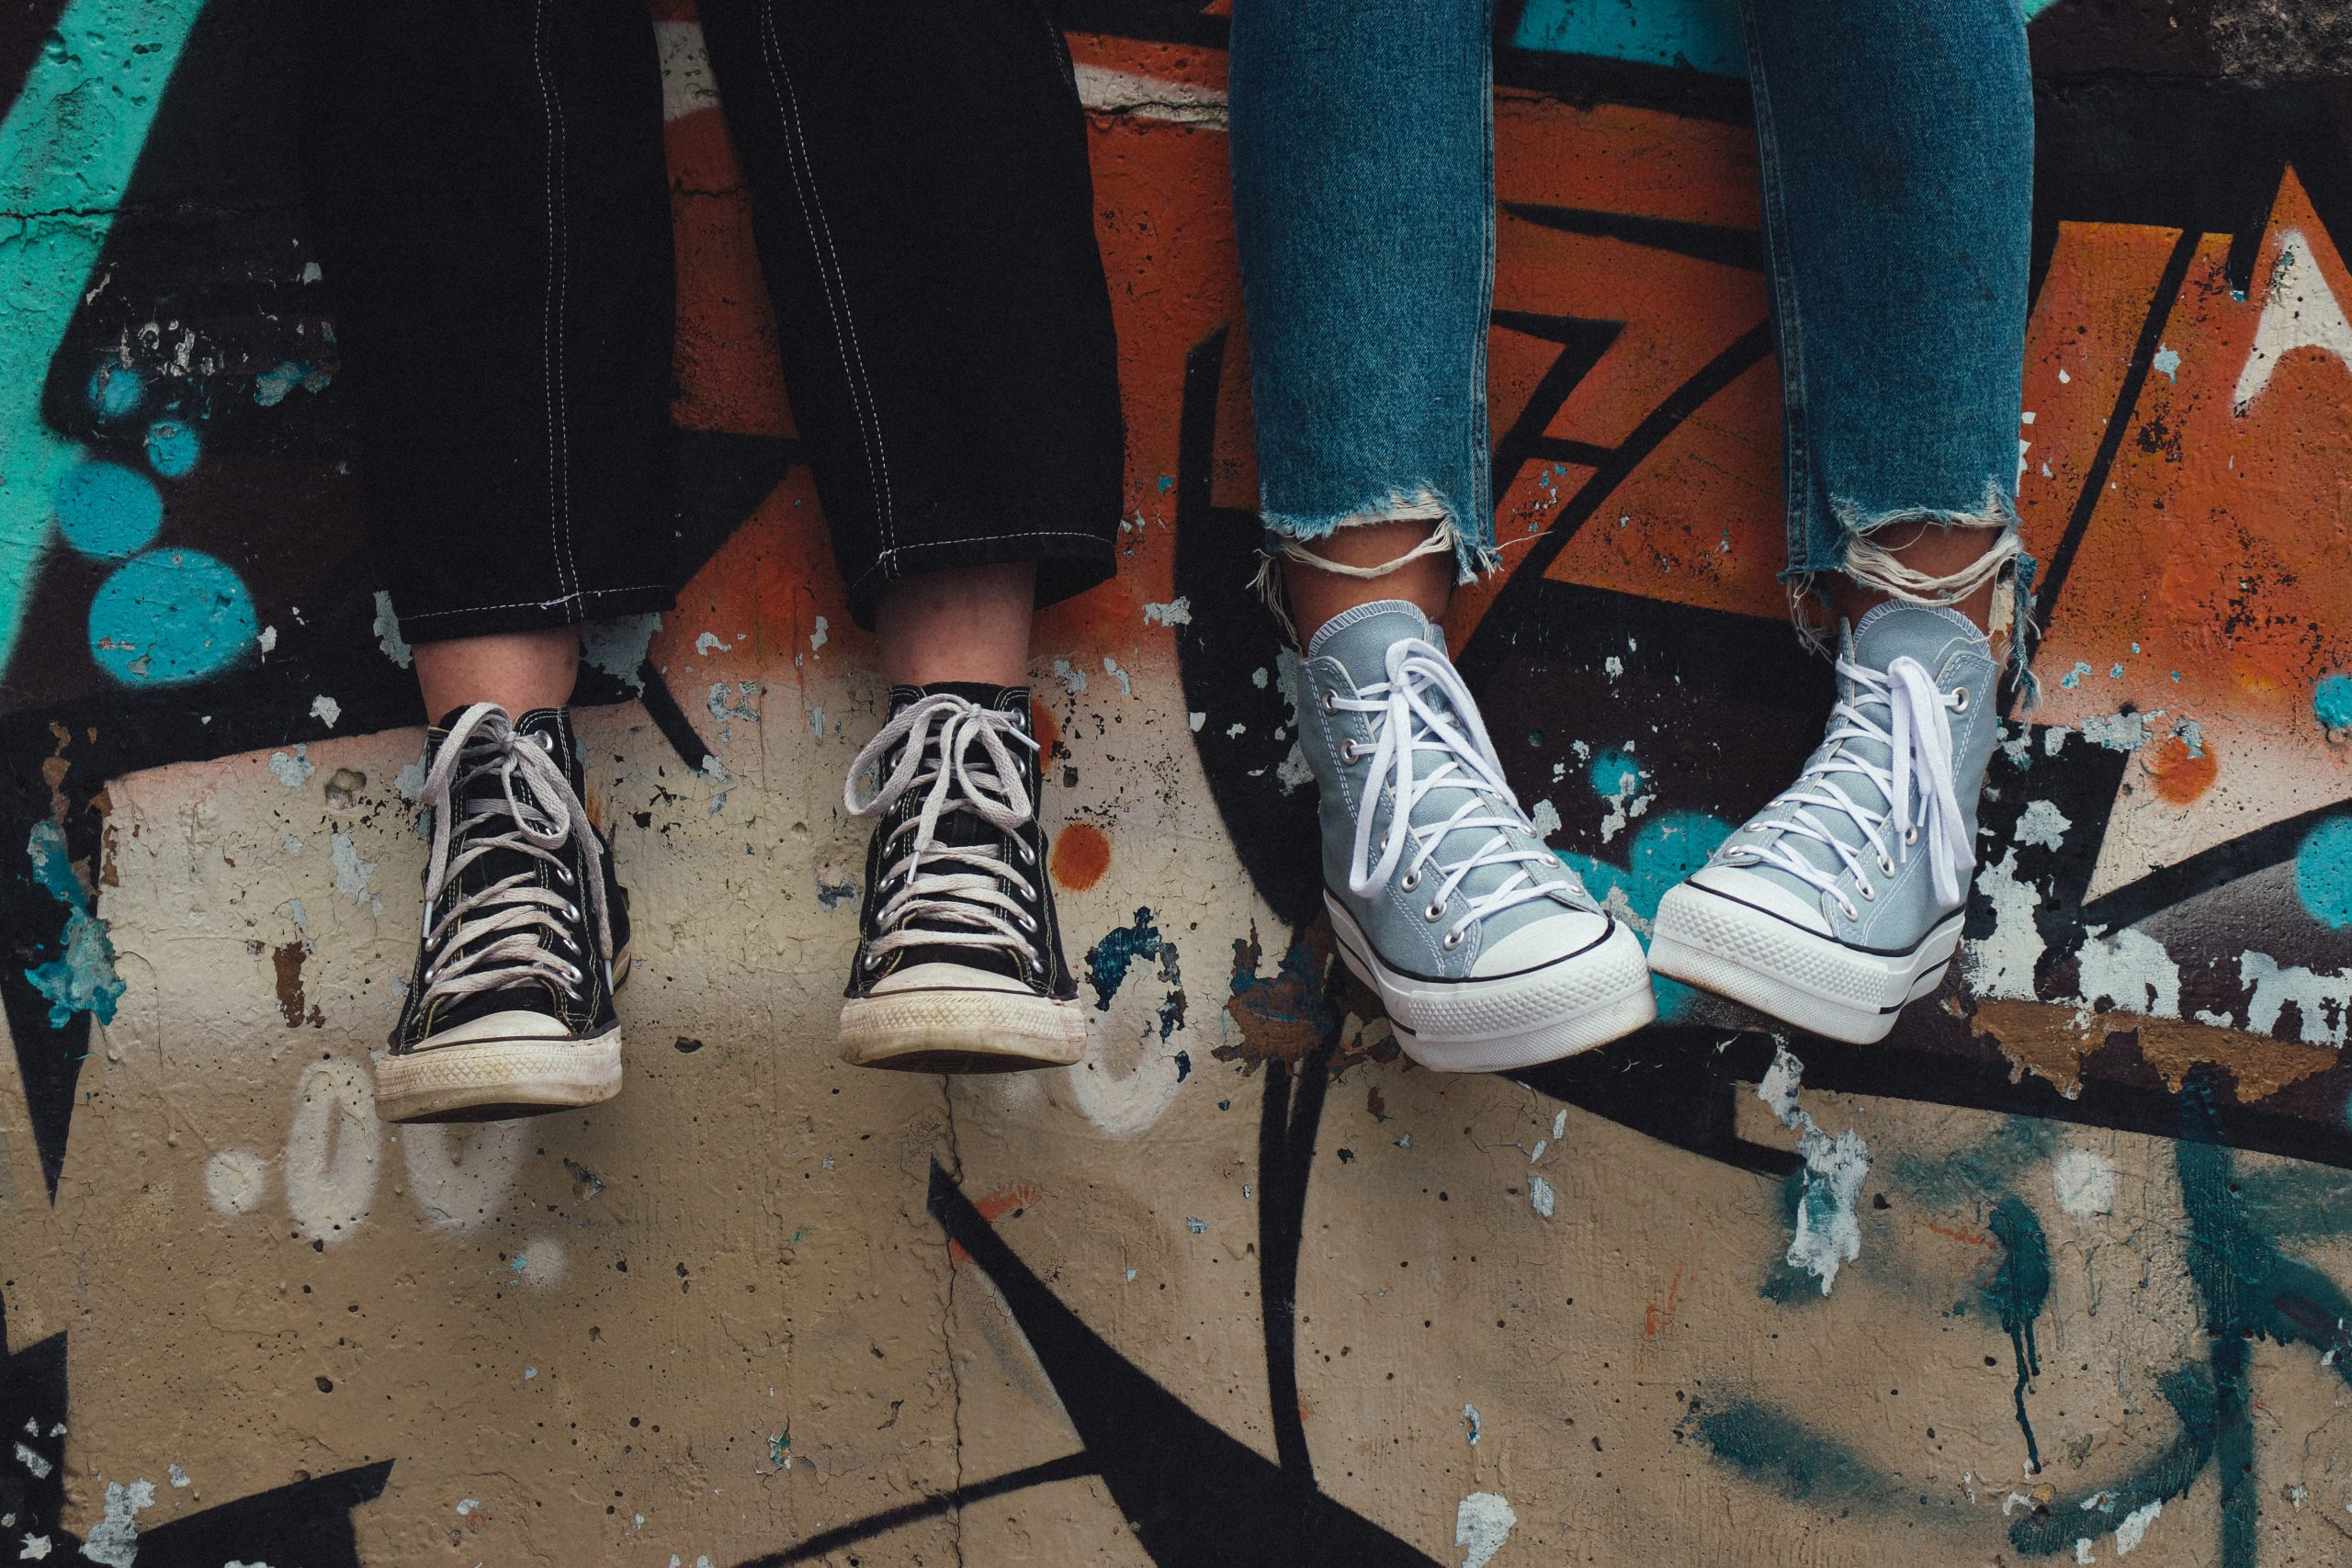 A pair of feets drop from the top of the frame. They both wear trainers and the wall is covered in graffiti.